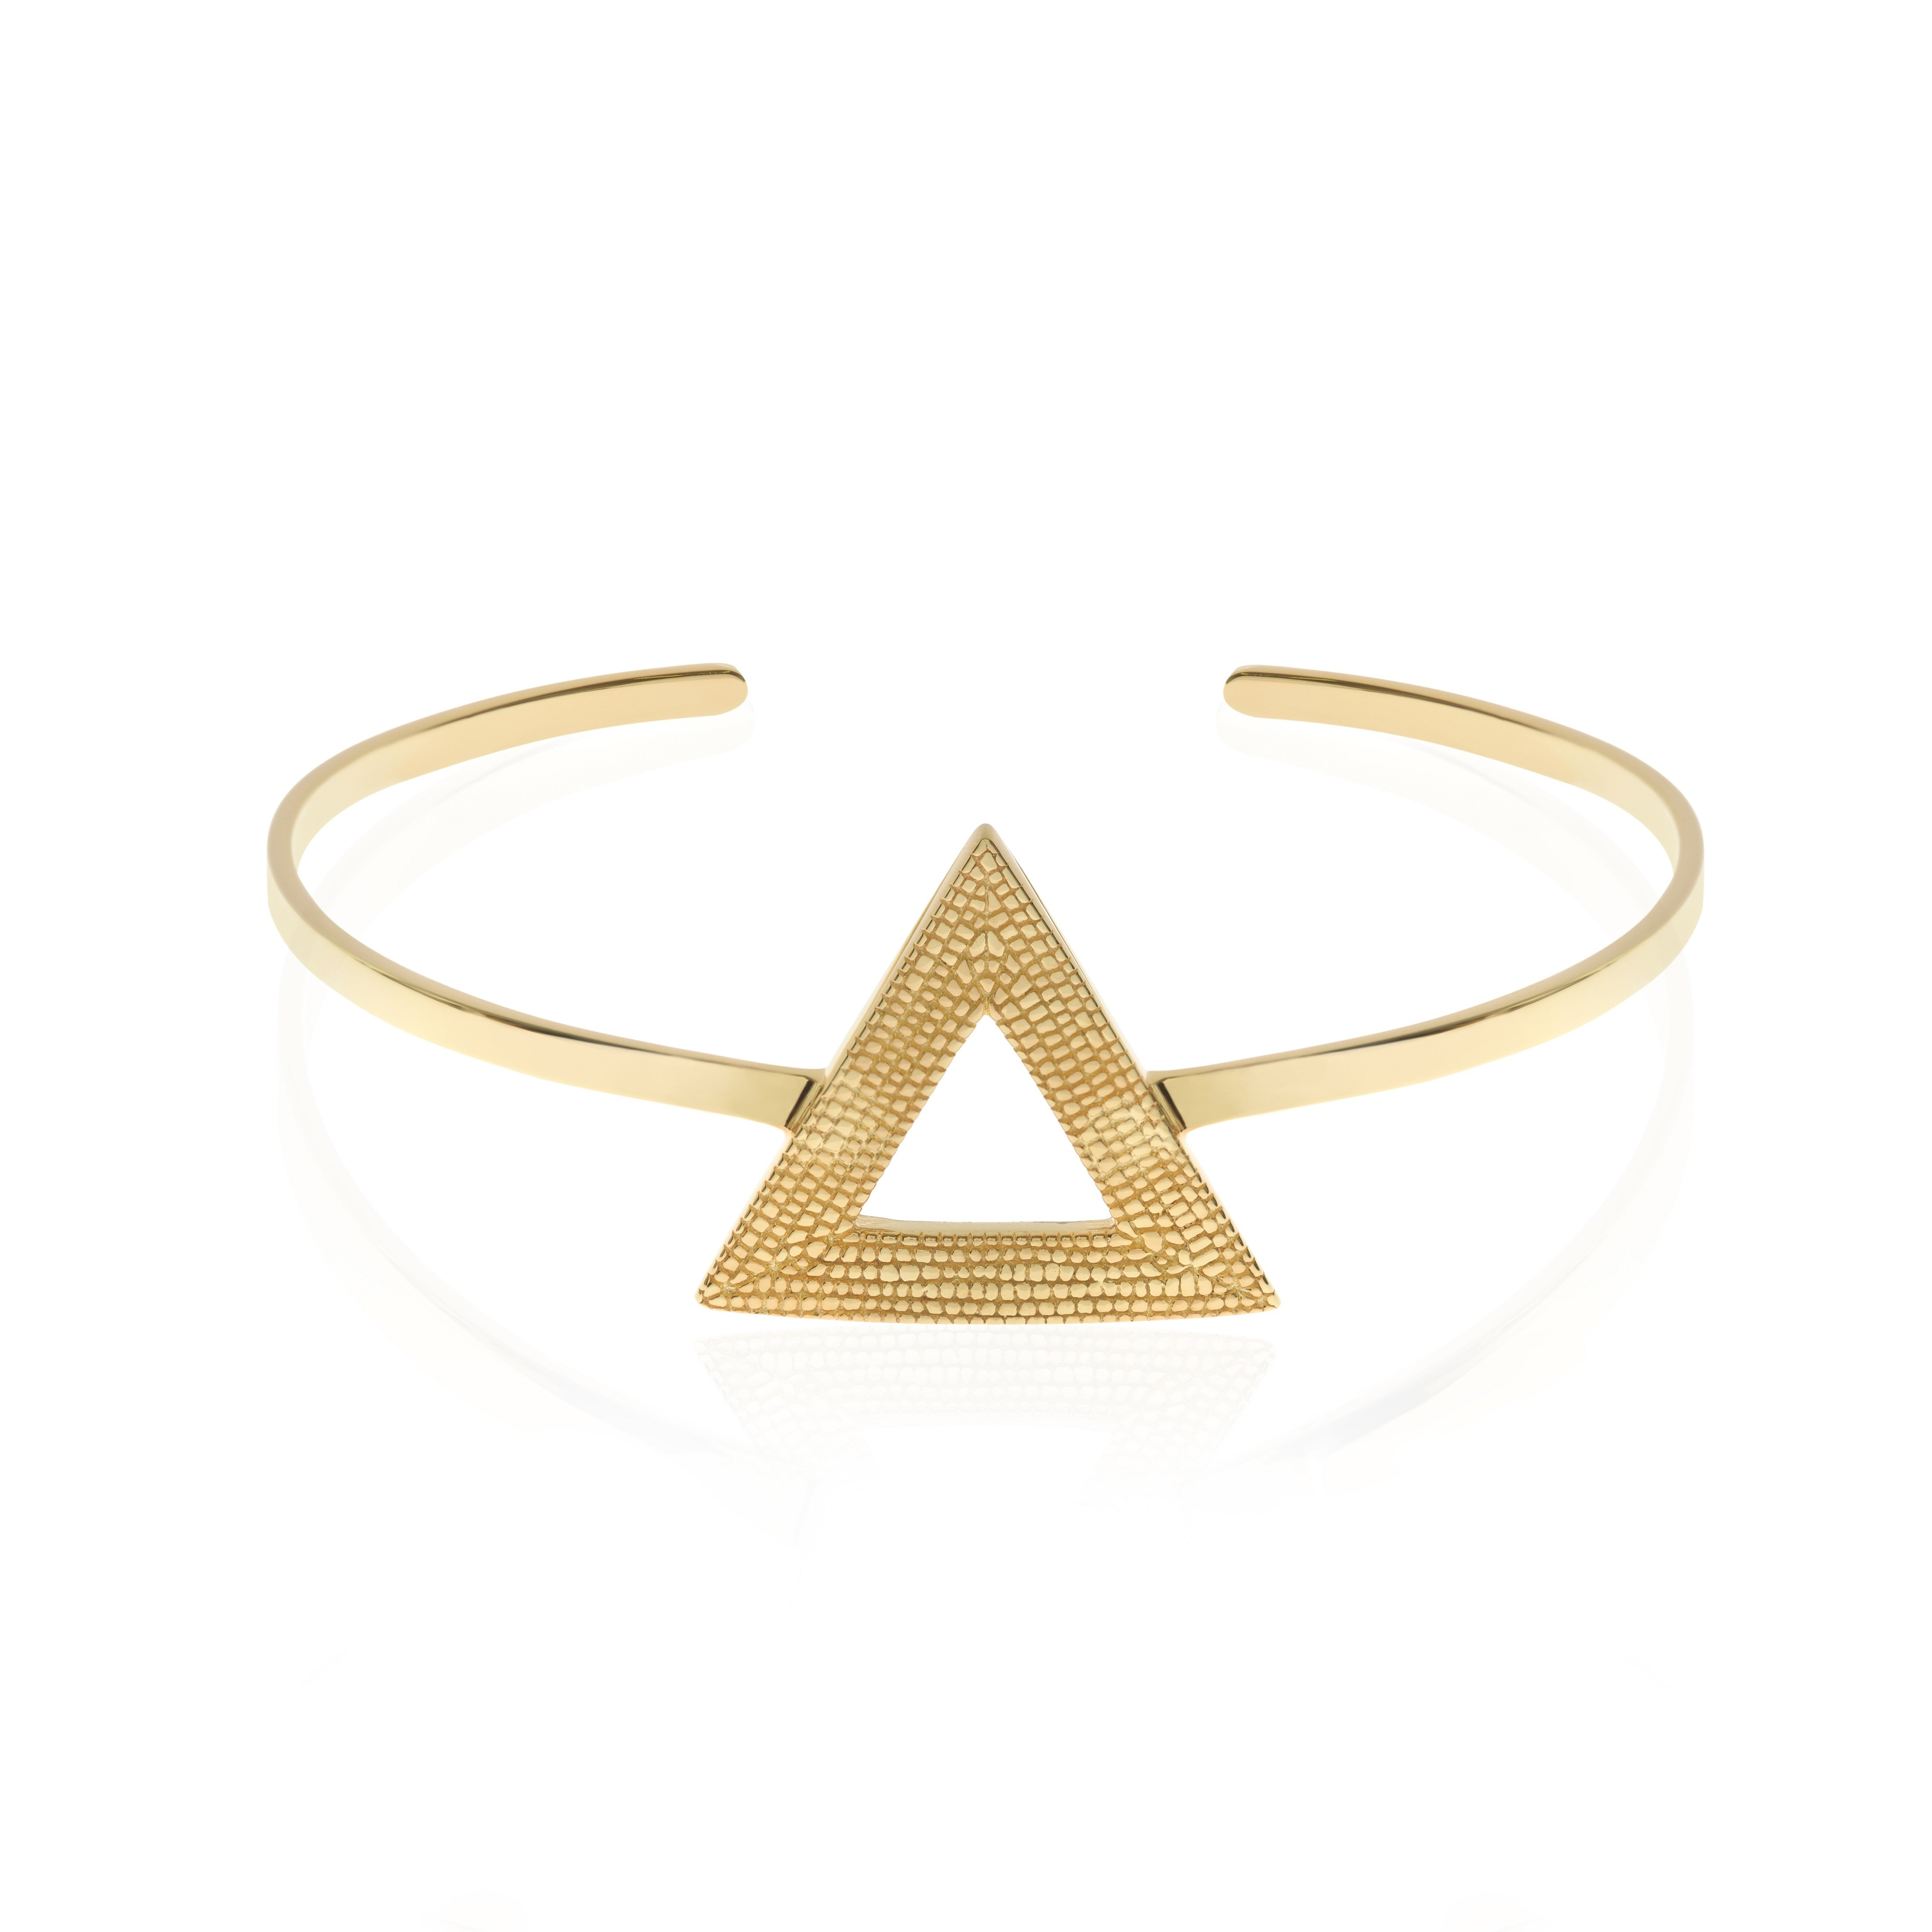 Who Says We Can't Change? Bangle/Cuff, Gold by Sally Lane Jewellery on curated-crowd.com